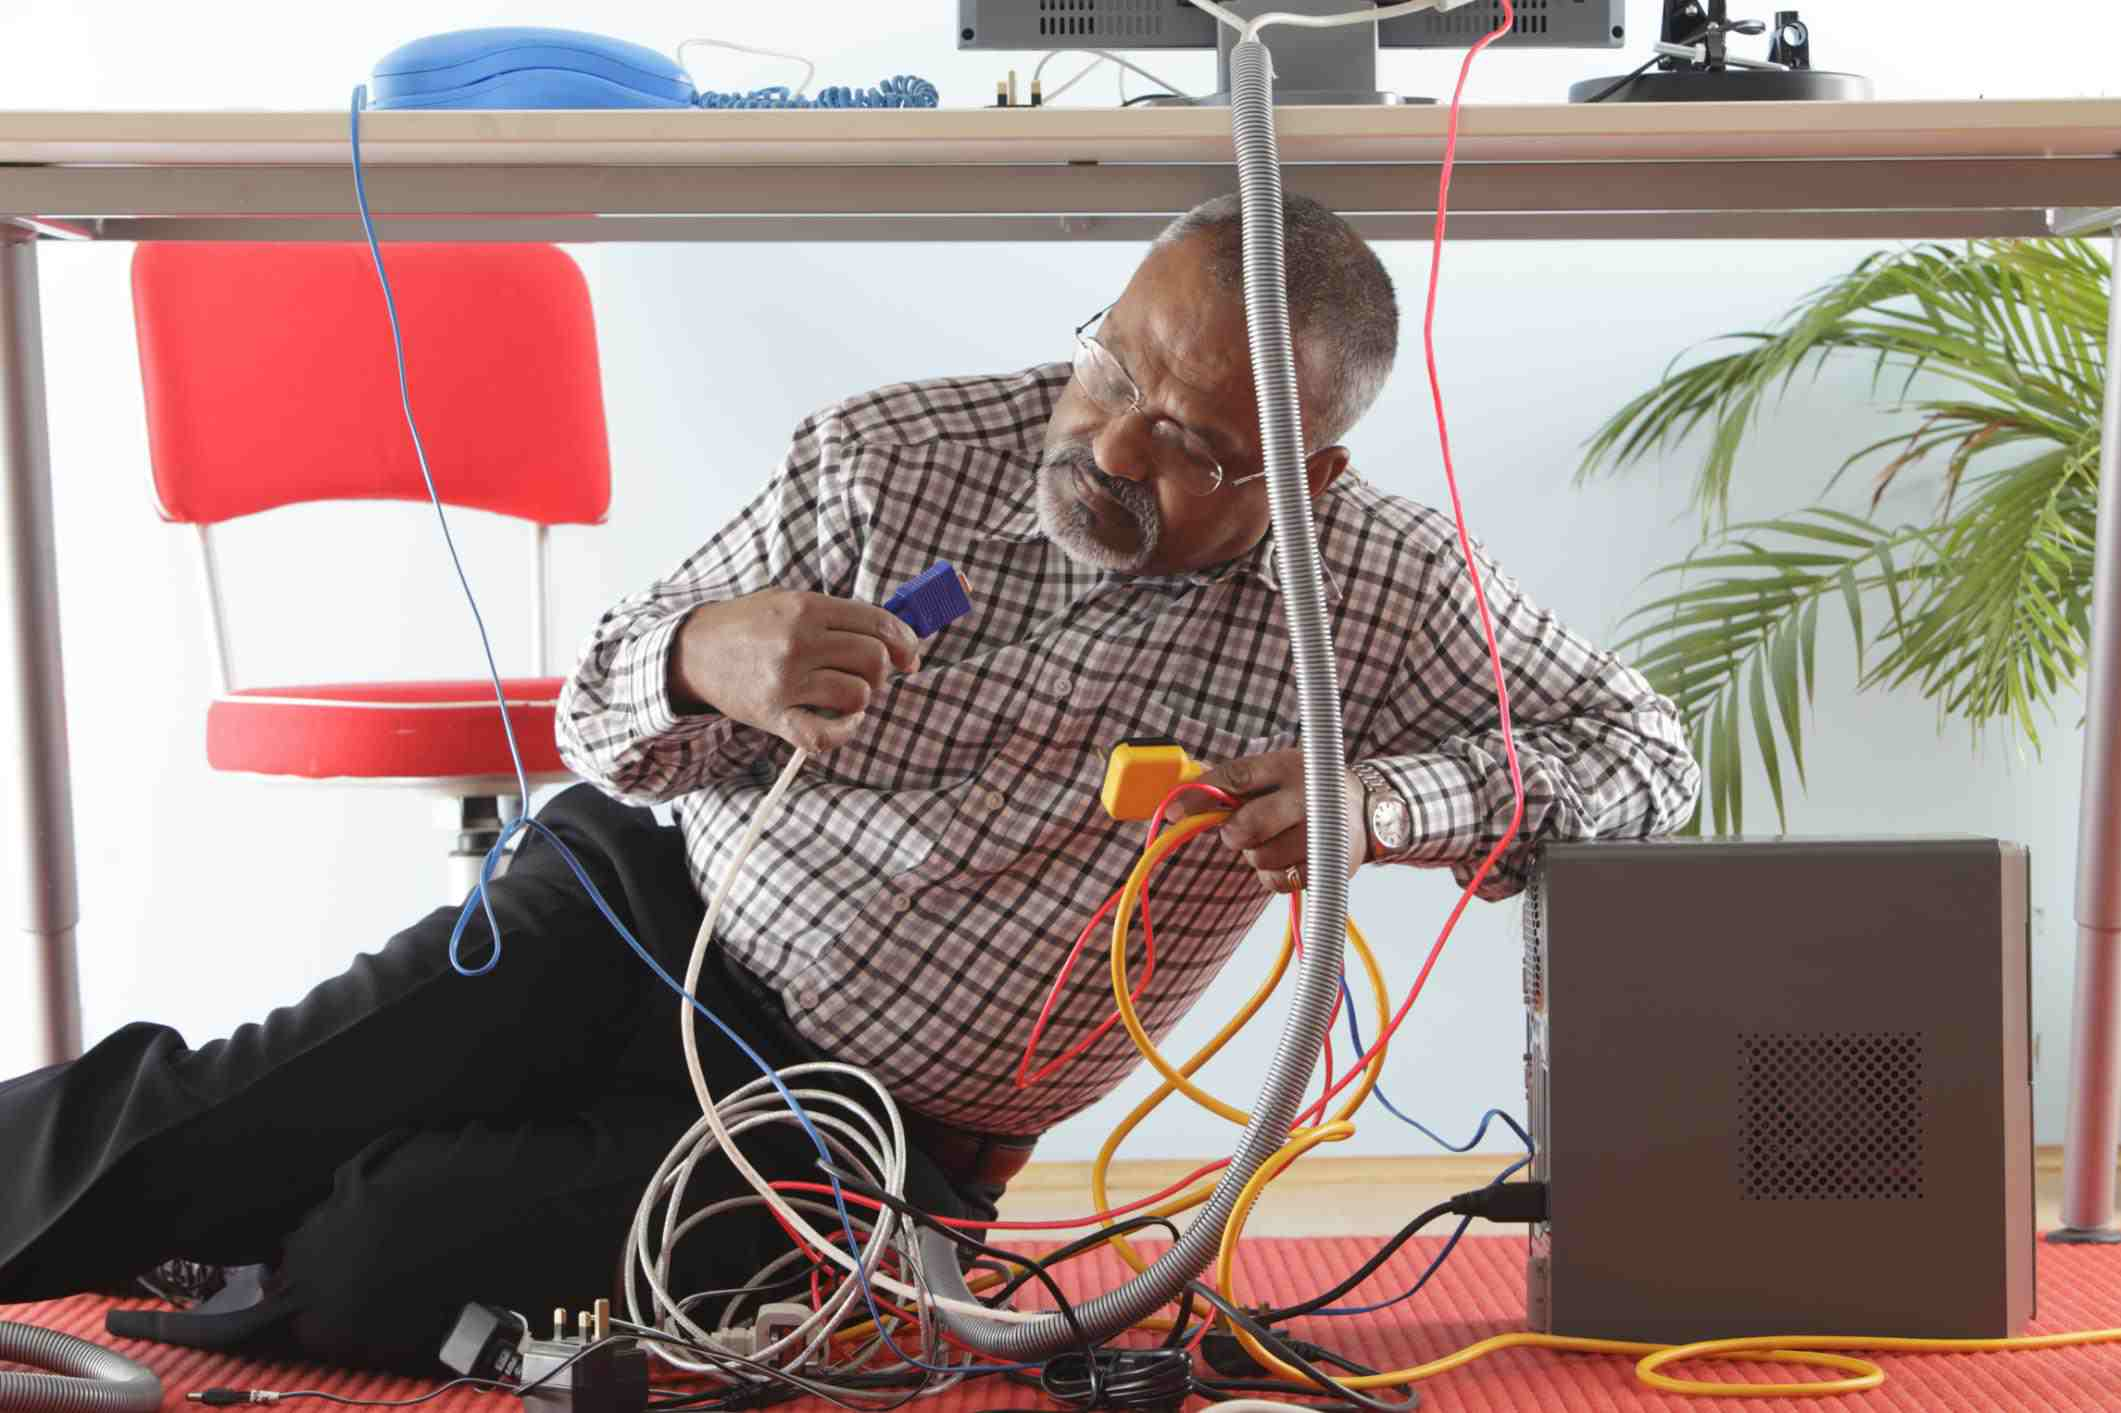 Man under desk with computer wires